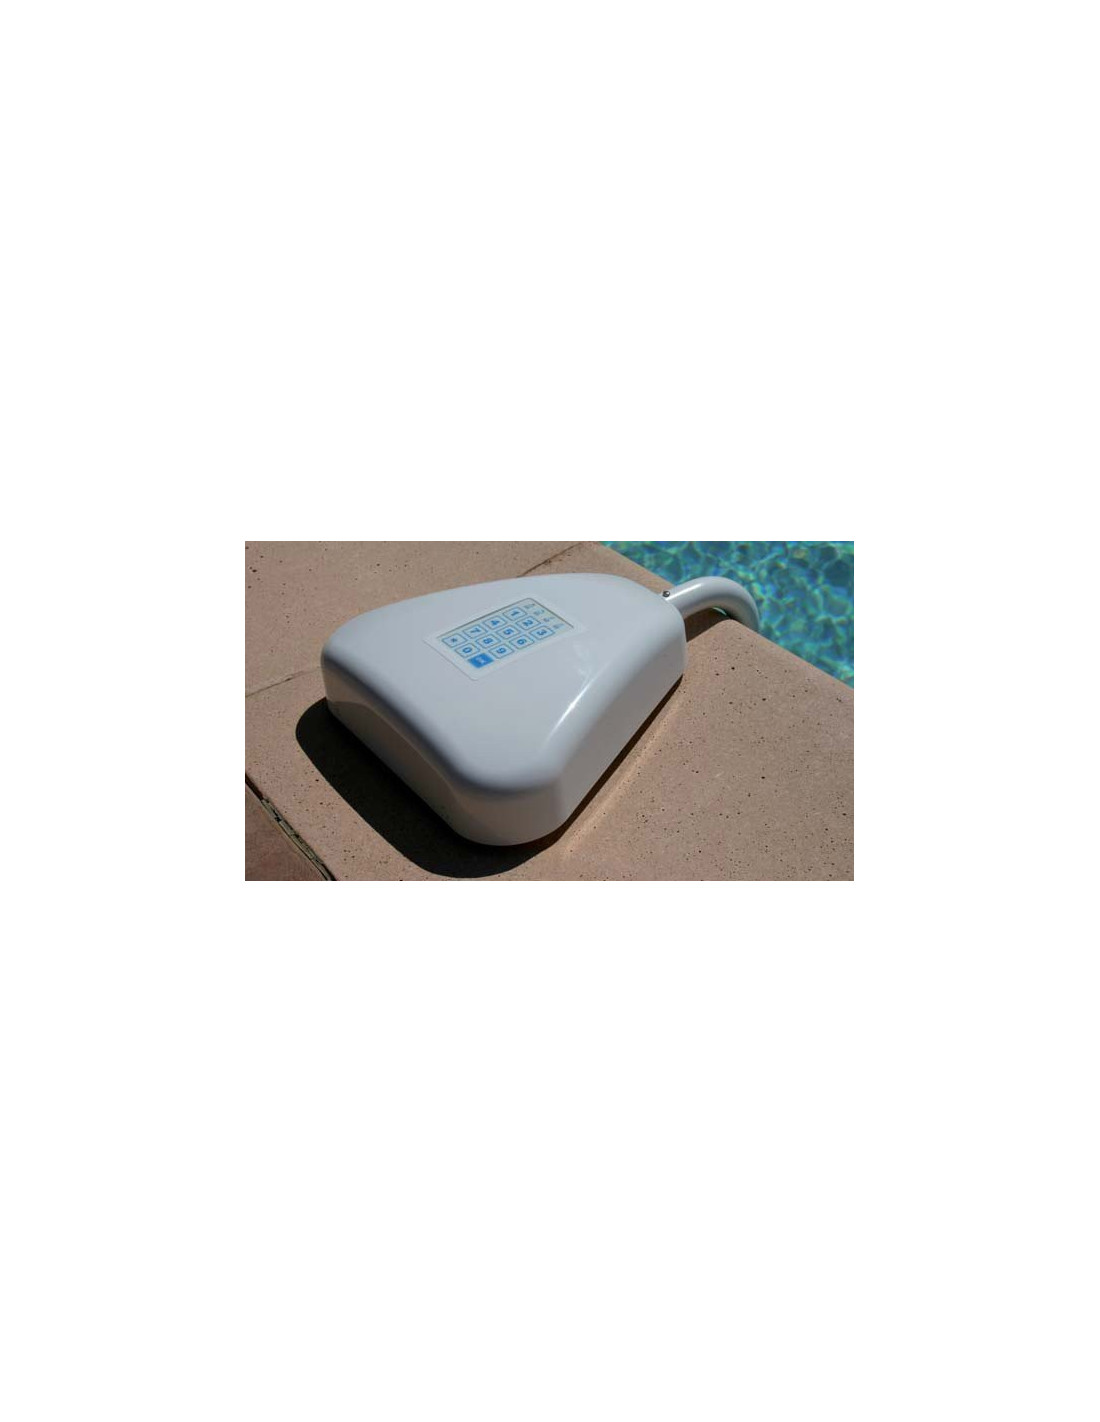 Alarme de piscine aqualarm for Alarme de piscine